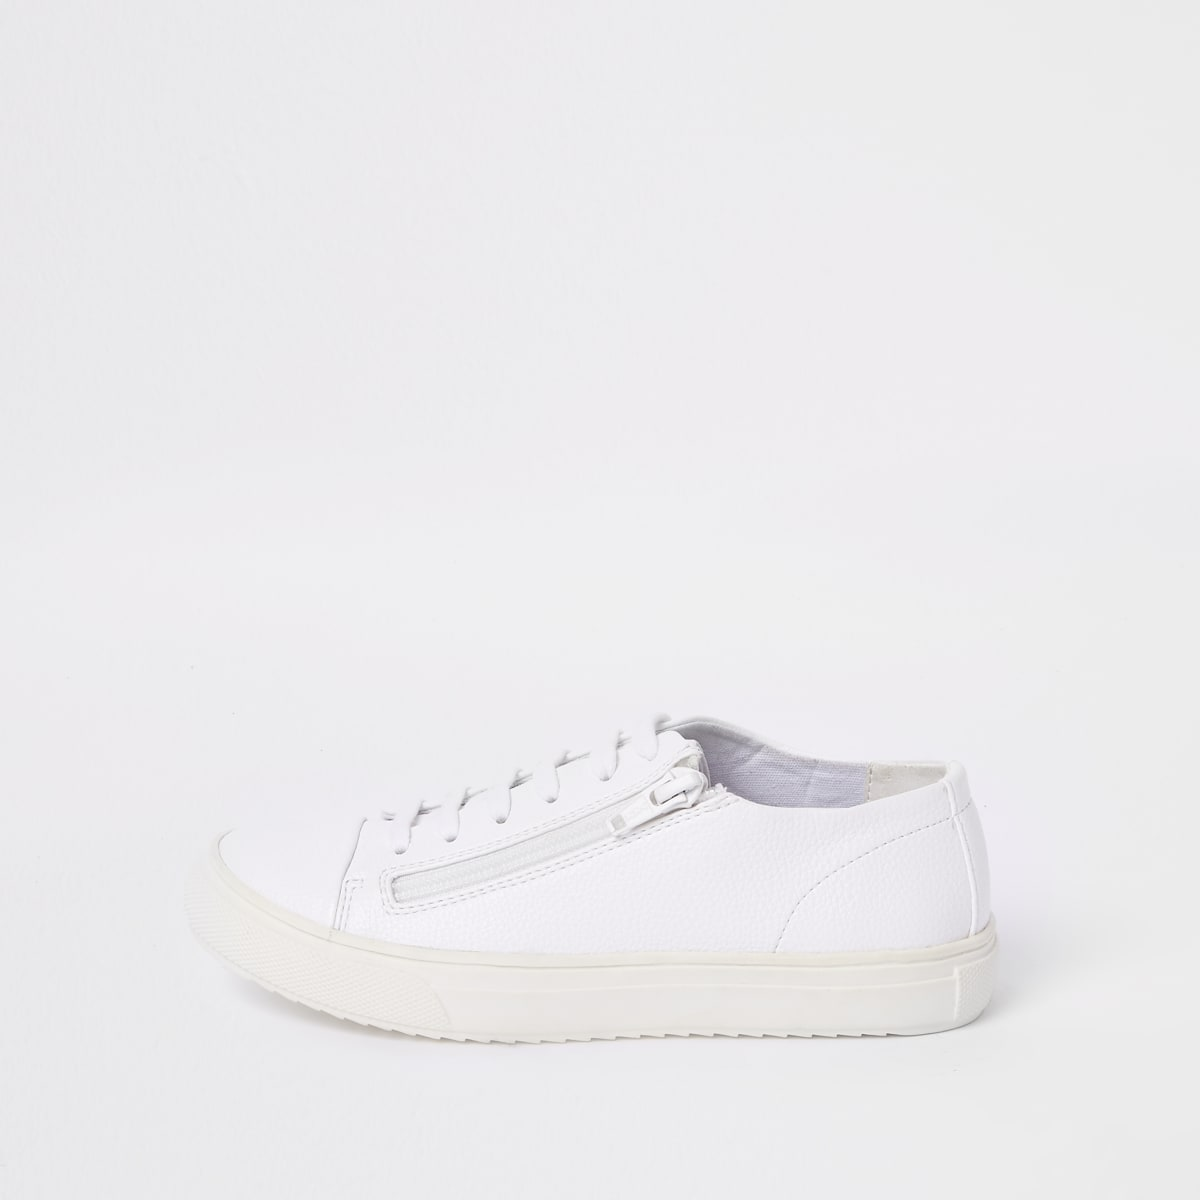 Boys white lace-up zip sneakers